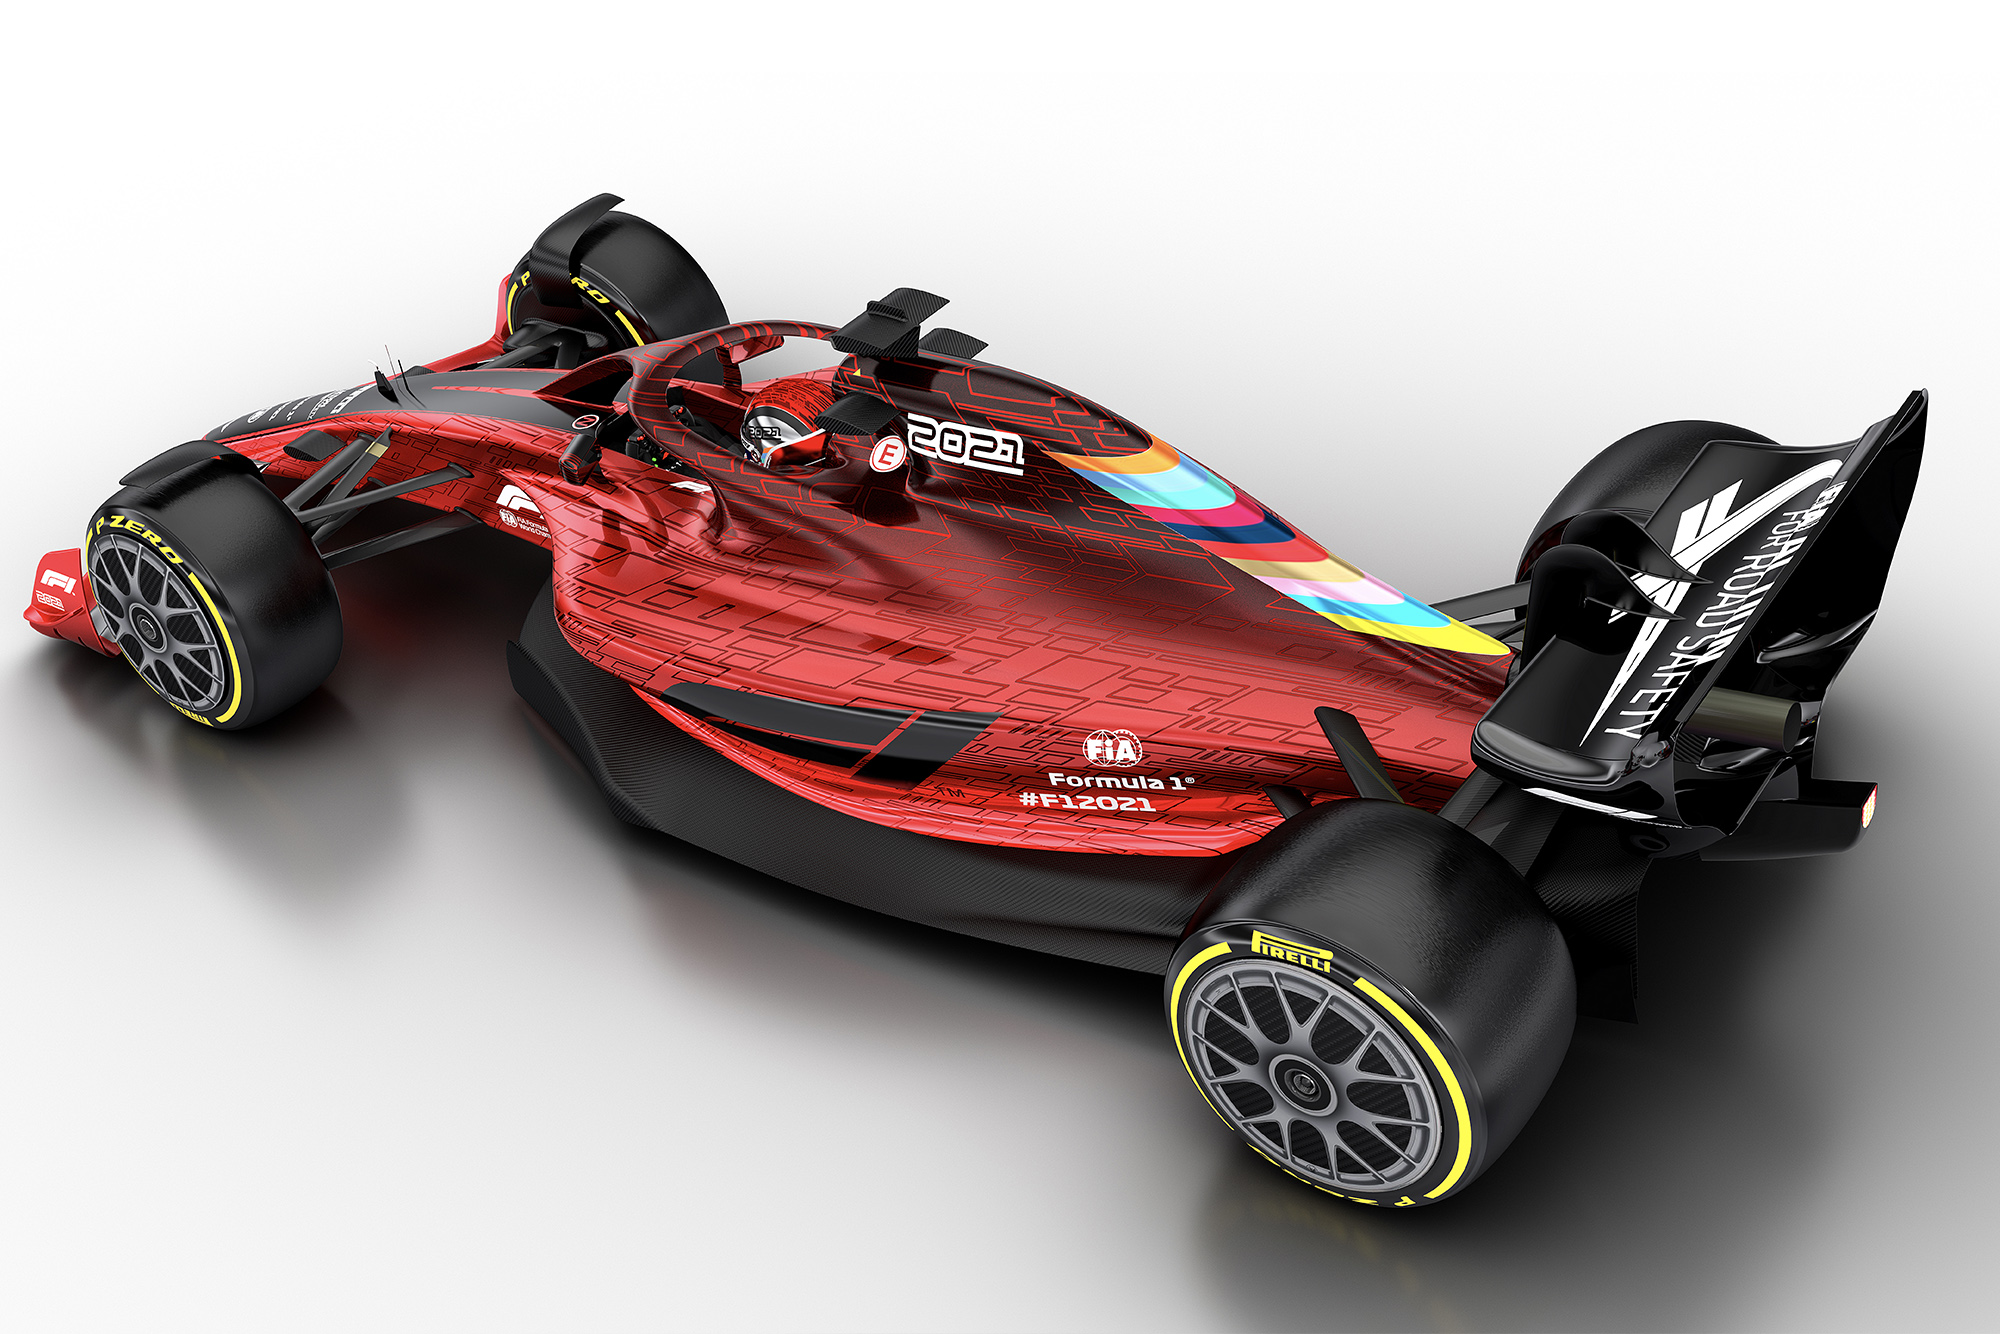 2021 F1 car design from top